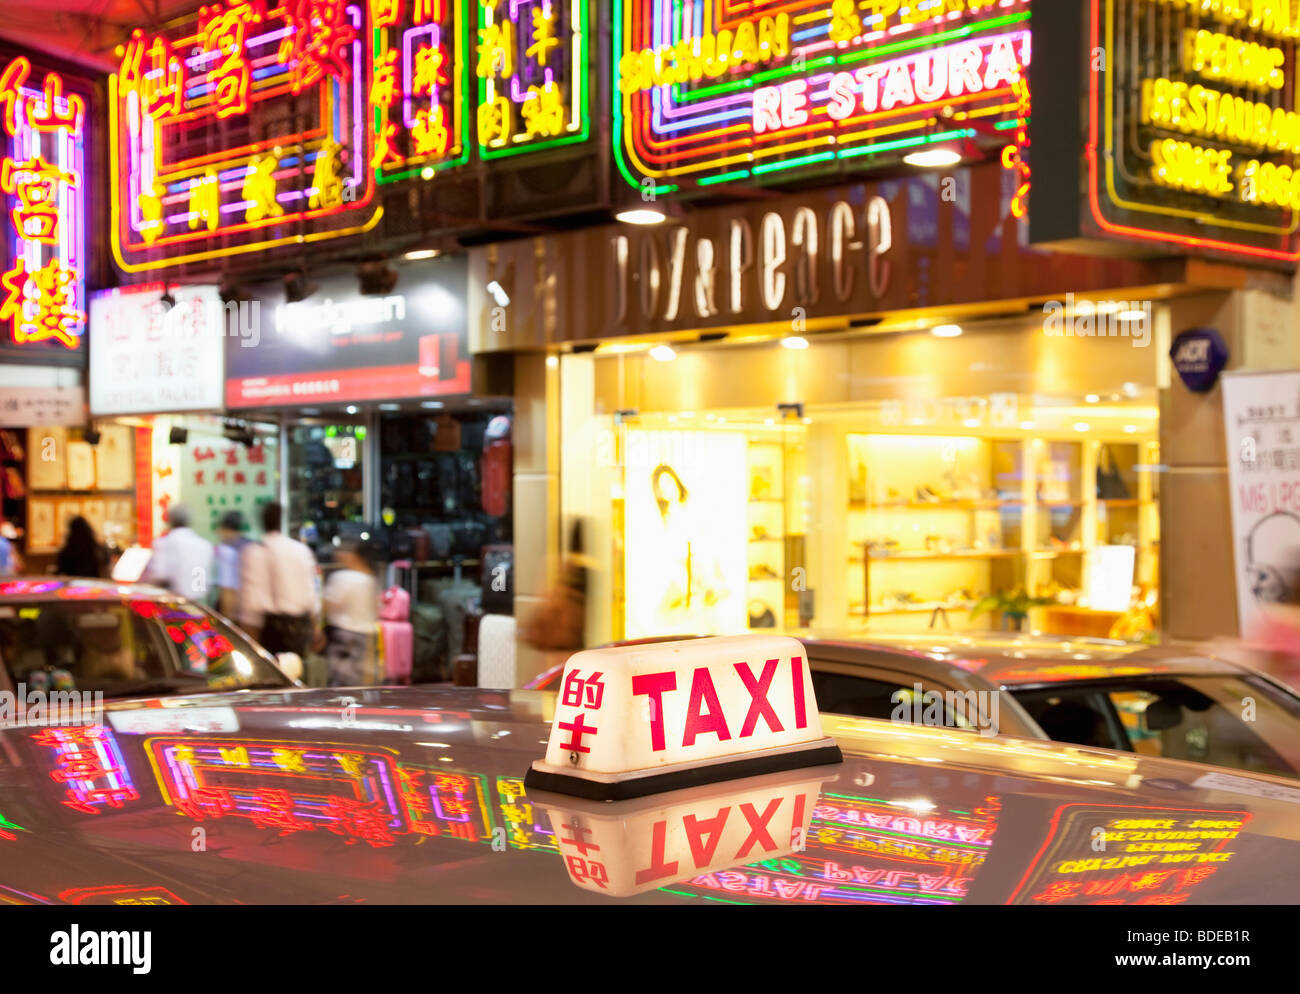 Neon signs and taxi light in Tsim Sha Tsui, Kowloon, Hong Kong, China. - Stock Image